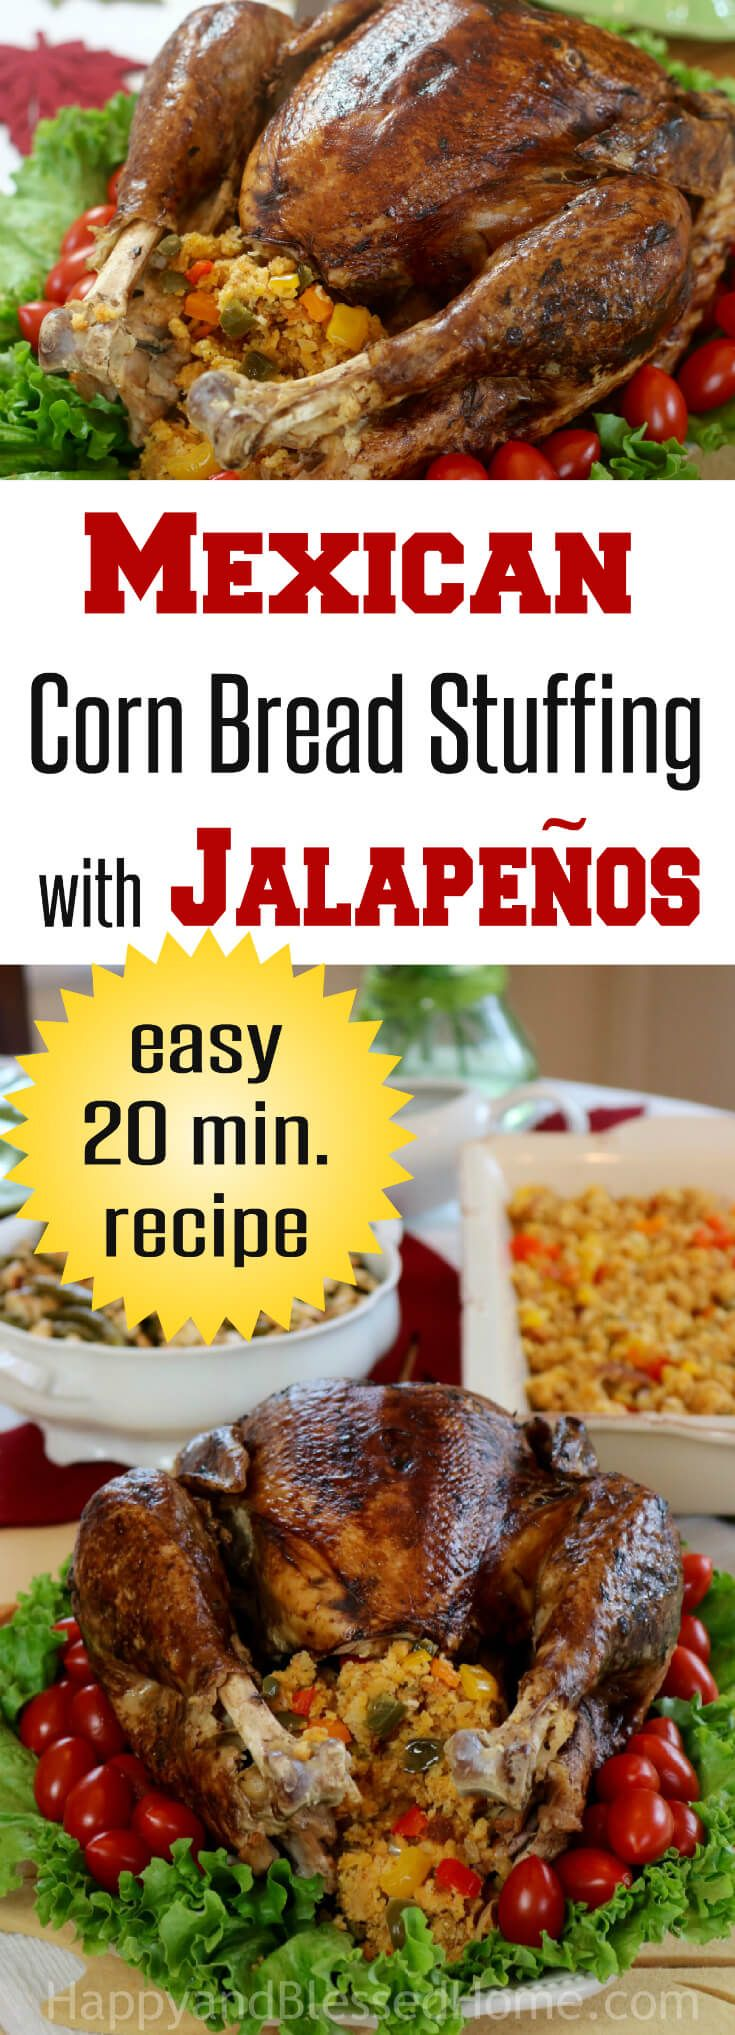 Mexican Corn Bread Stuffing with Jalapeños Recipe - Perfect for Thanksgiving dinner. This recipe combines the flavors of jalapeños with corn, onions, and bell peppers. A hearty vegetable inspired combination that pairs perfectly with ham or turkey, Why not celebrate with Mexican inspired flavors over the holidays this year? Add this to your dinner recipes for the holidays and make happy mealtime memories. Ad